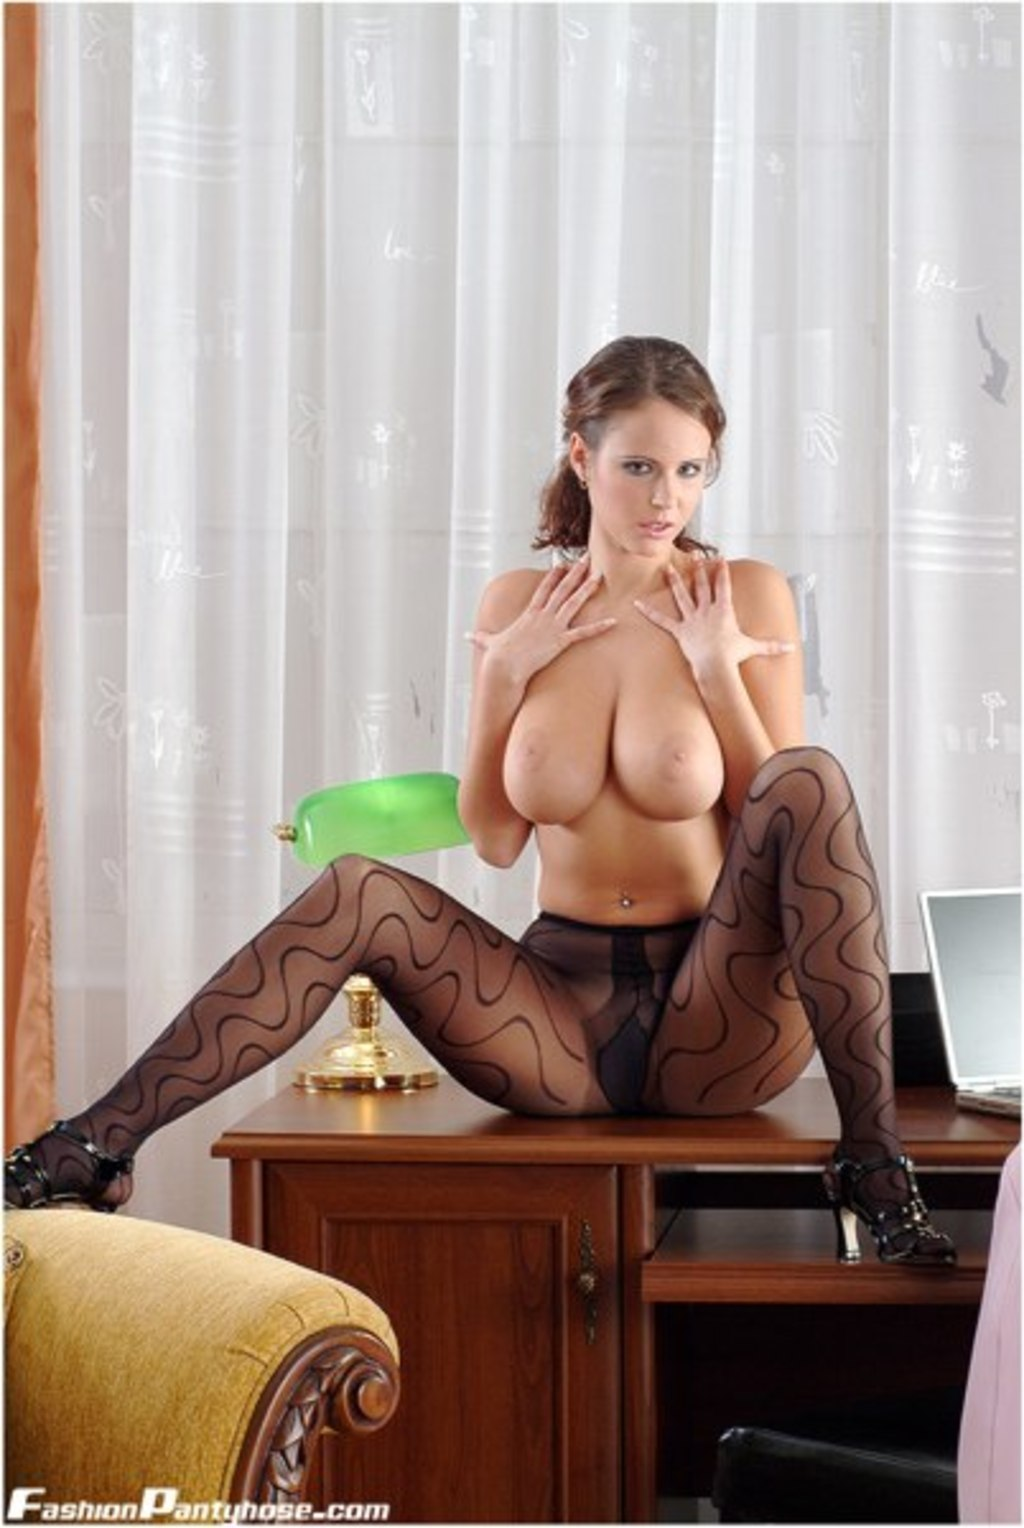 In Pantyhose Busty Babe 112